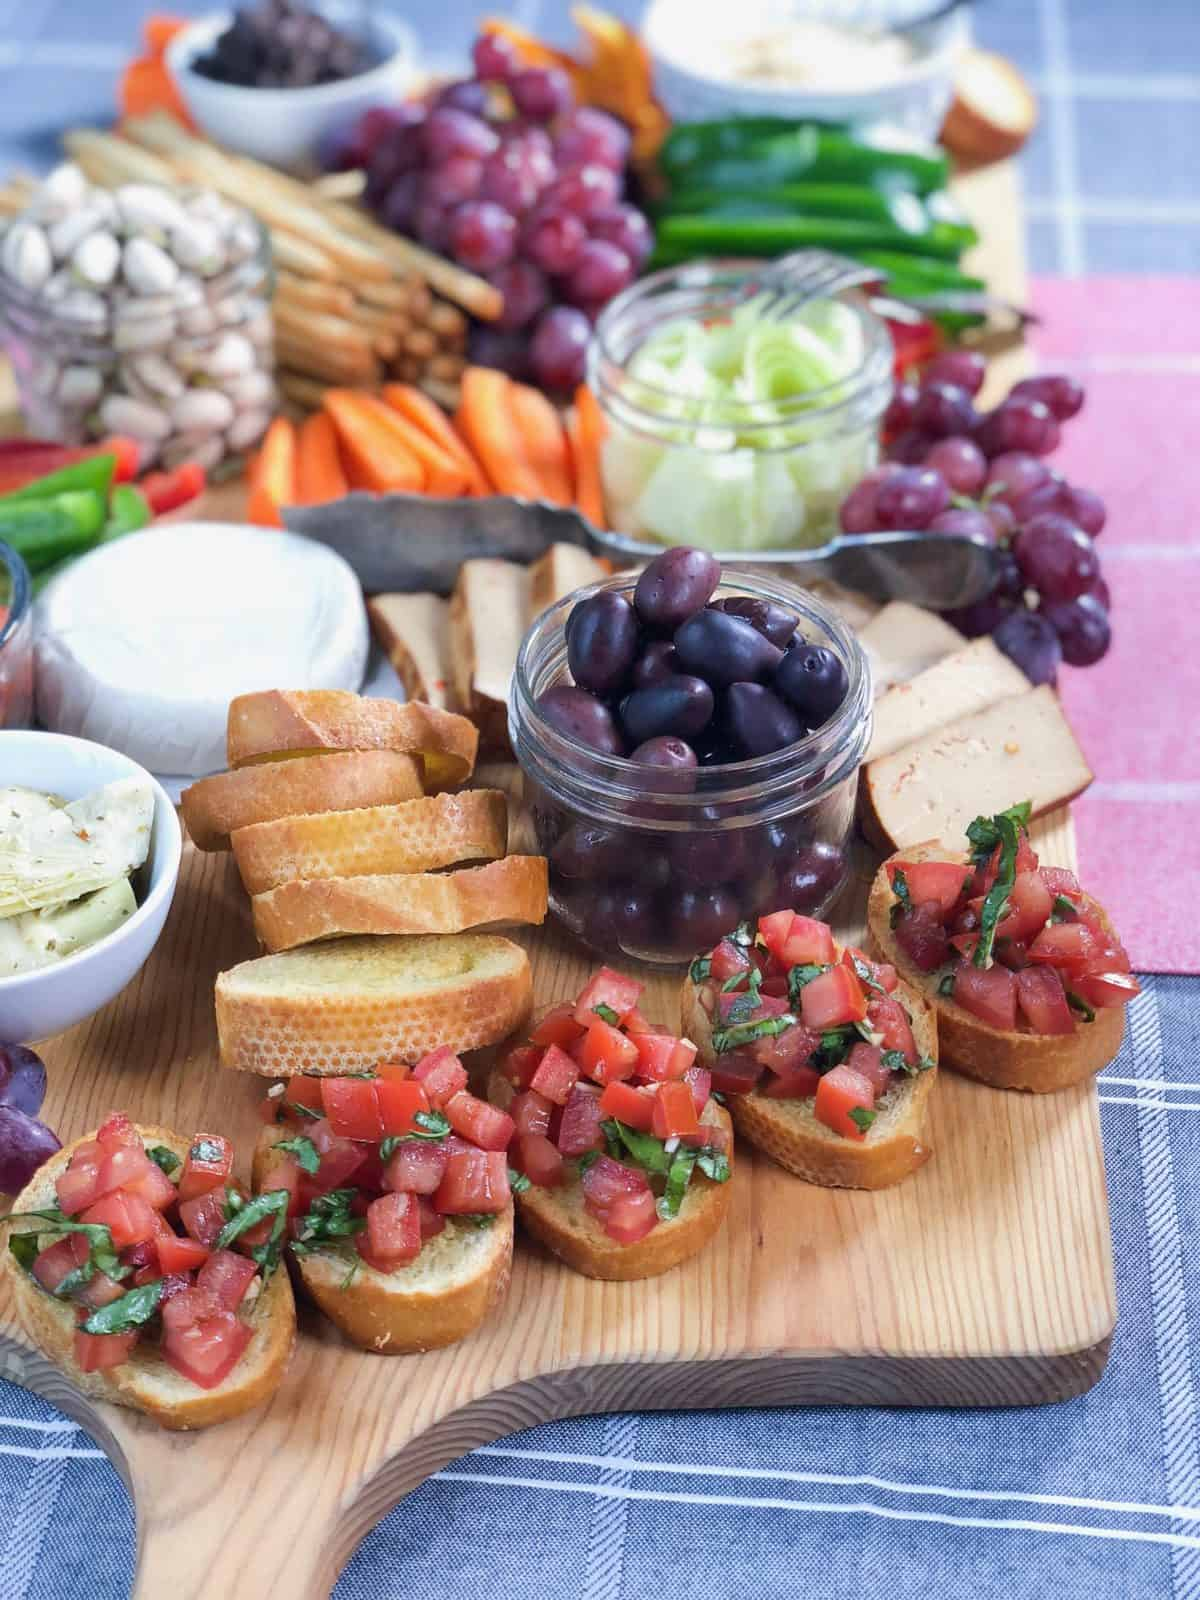 Vegan Grazing Table: How To Make A Vegan Grazing Platter